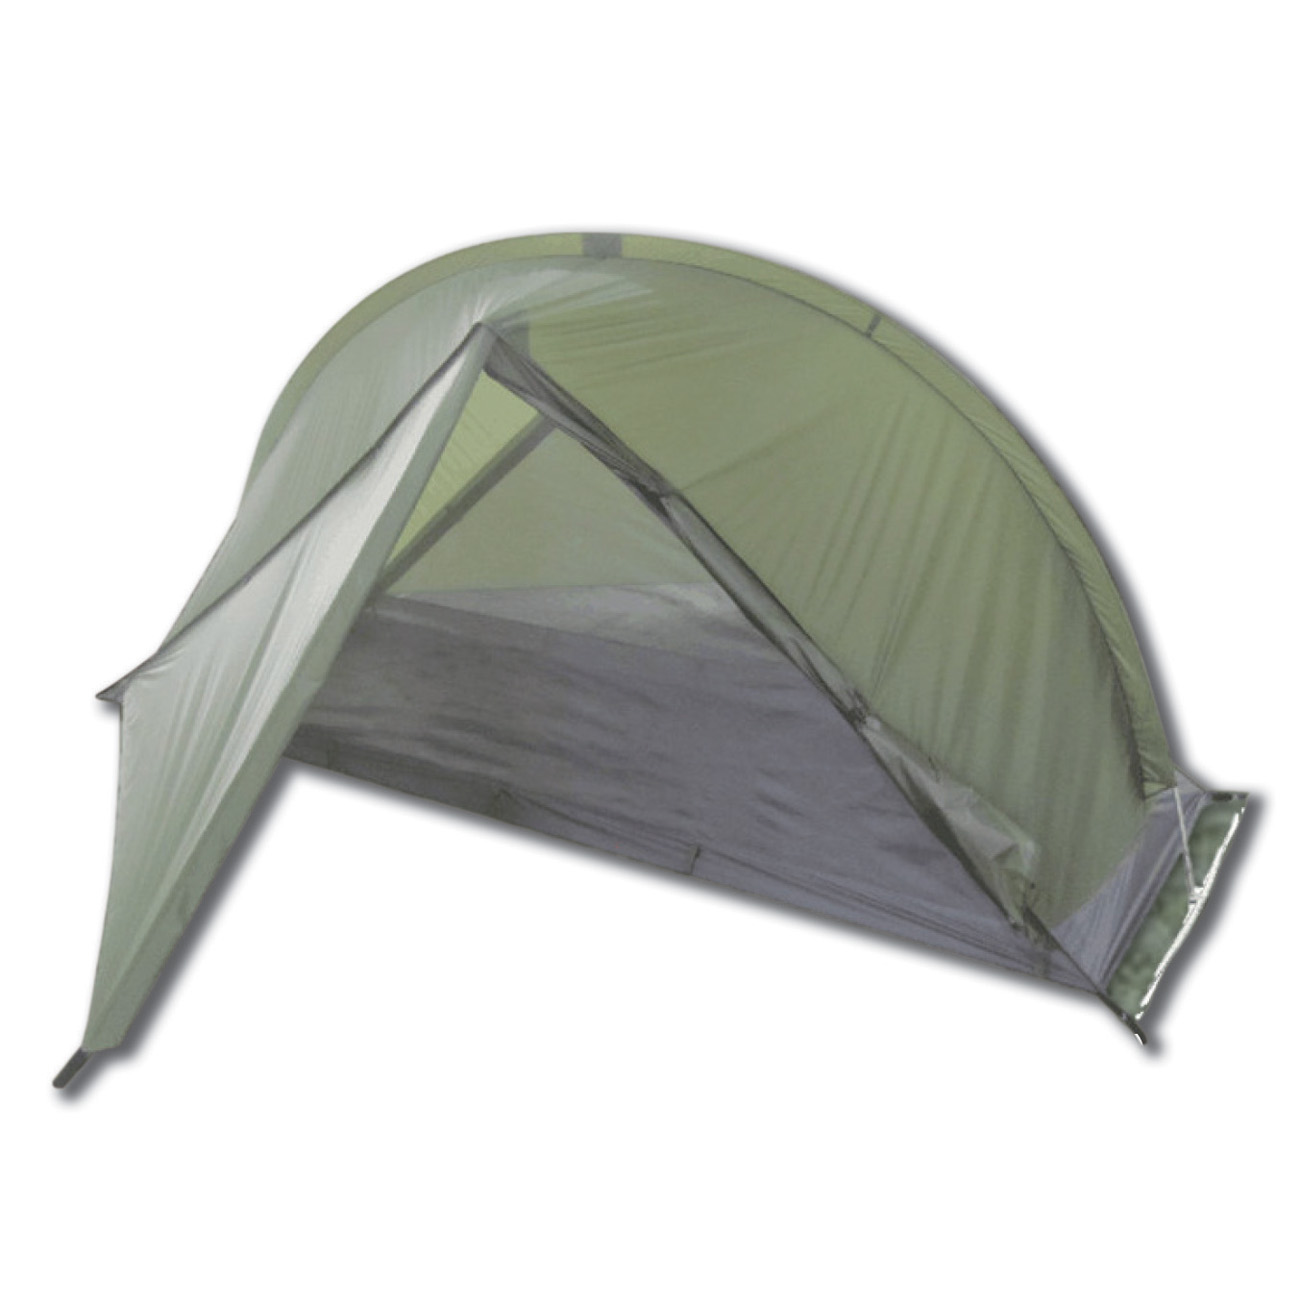 Solo 1-Person Lightweight Backpacking Tent